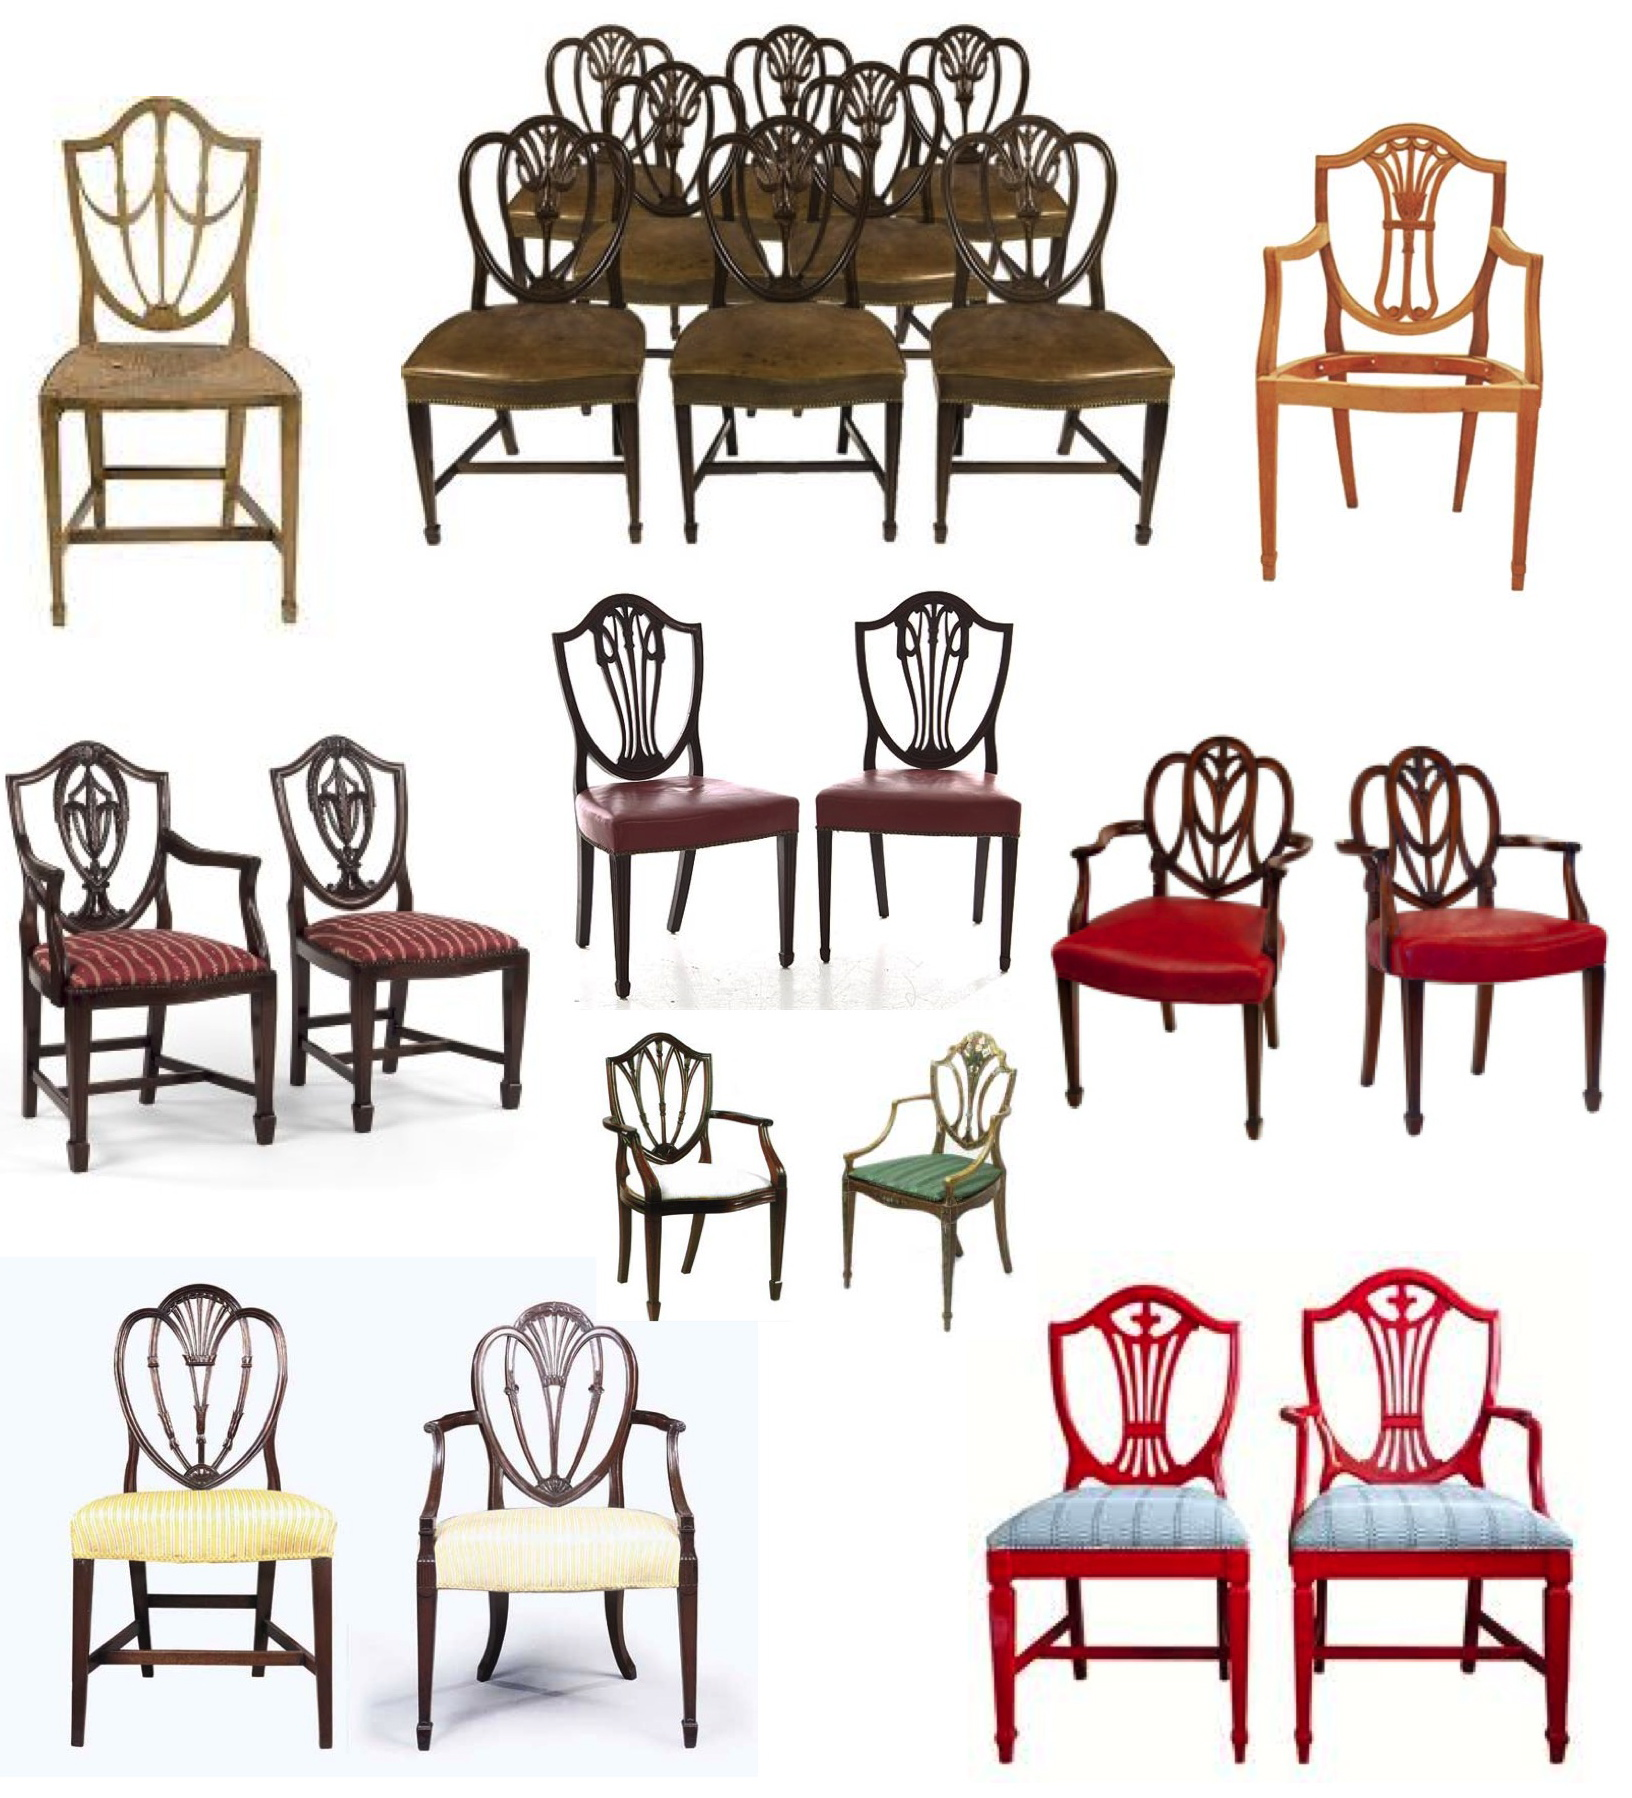 mystery of design the elegant hepplewhite shield back chair